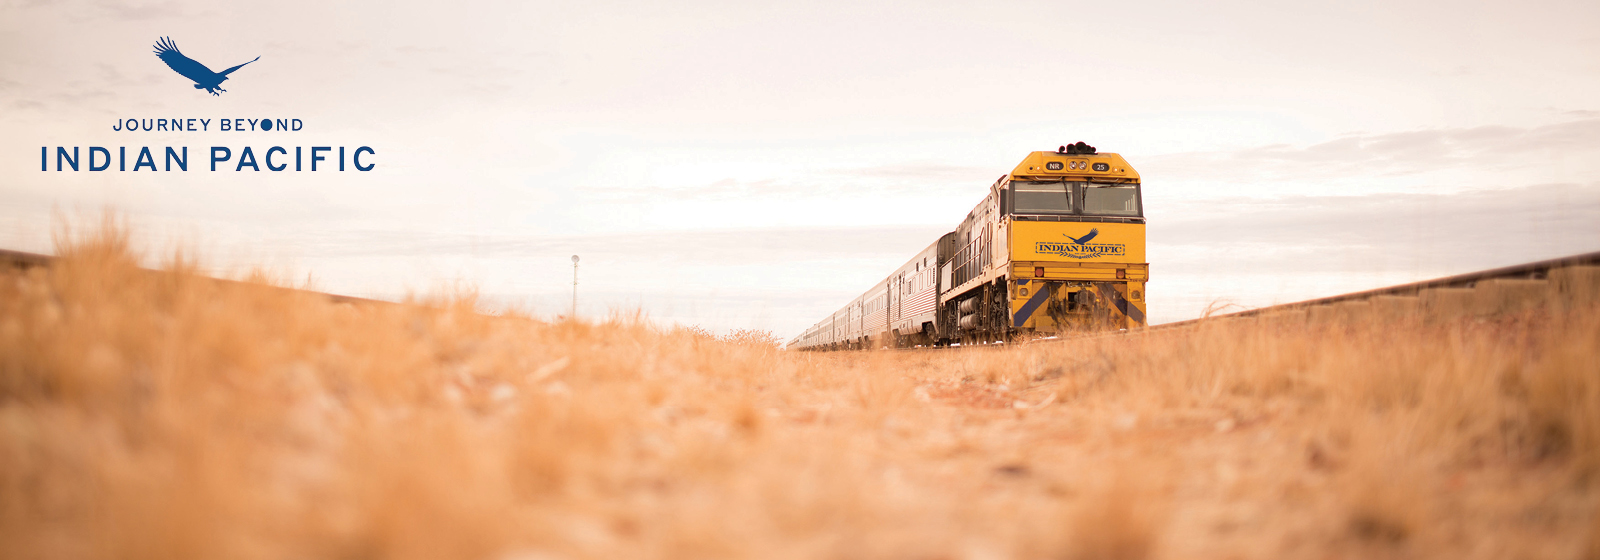 The Indian Pacific1